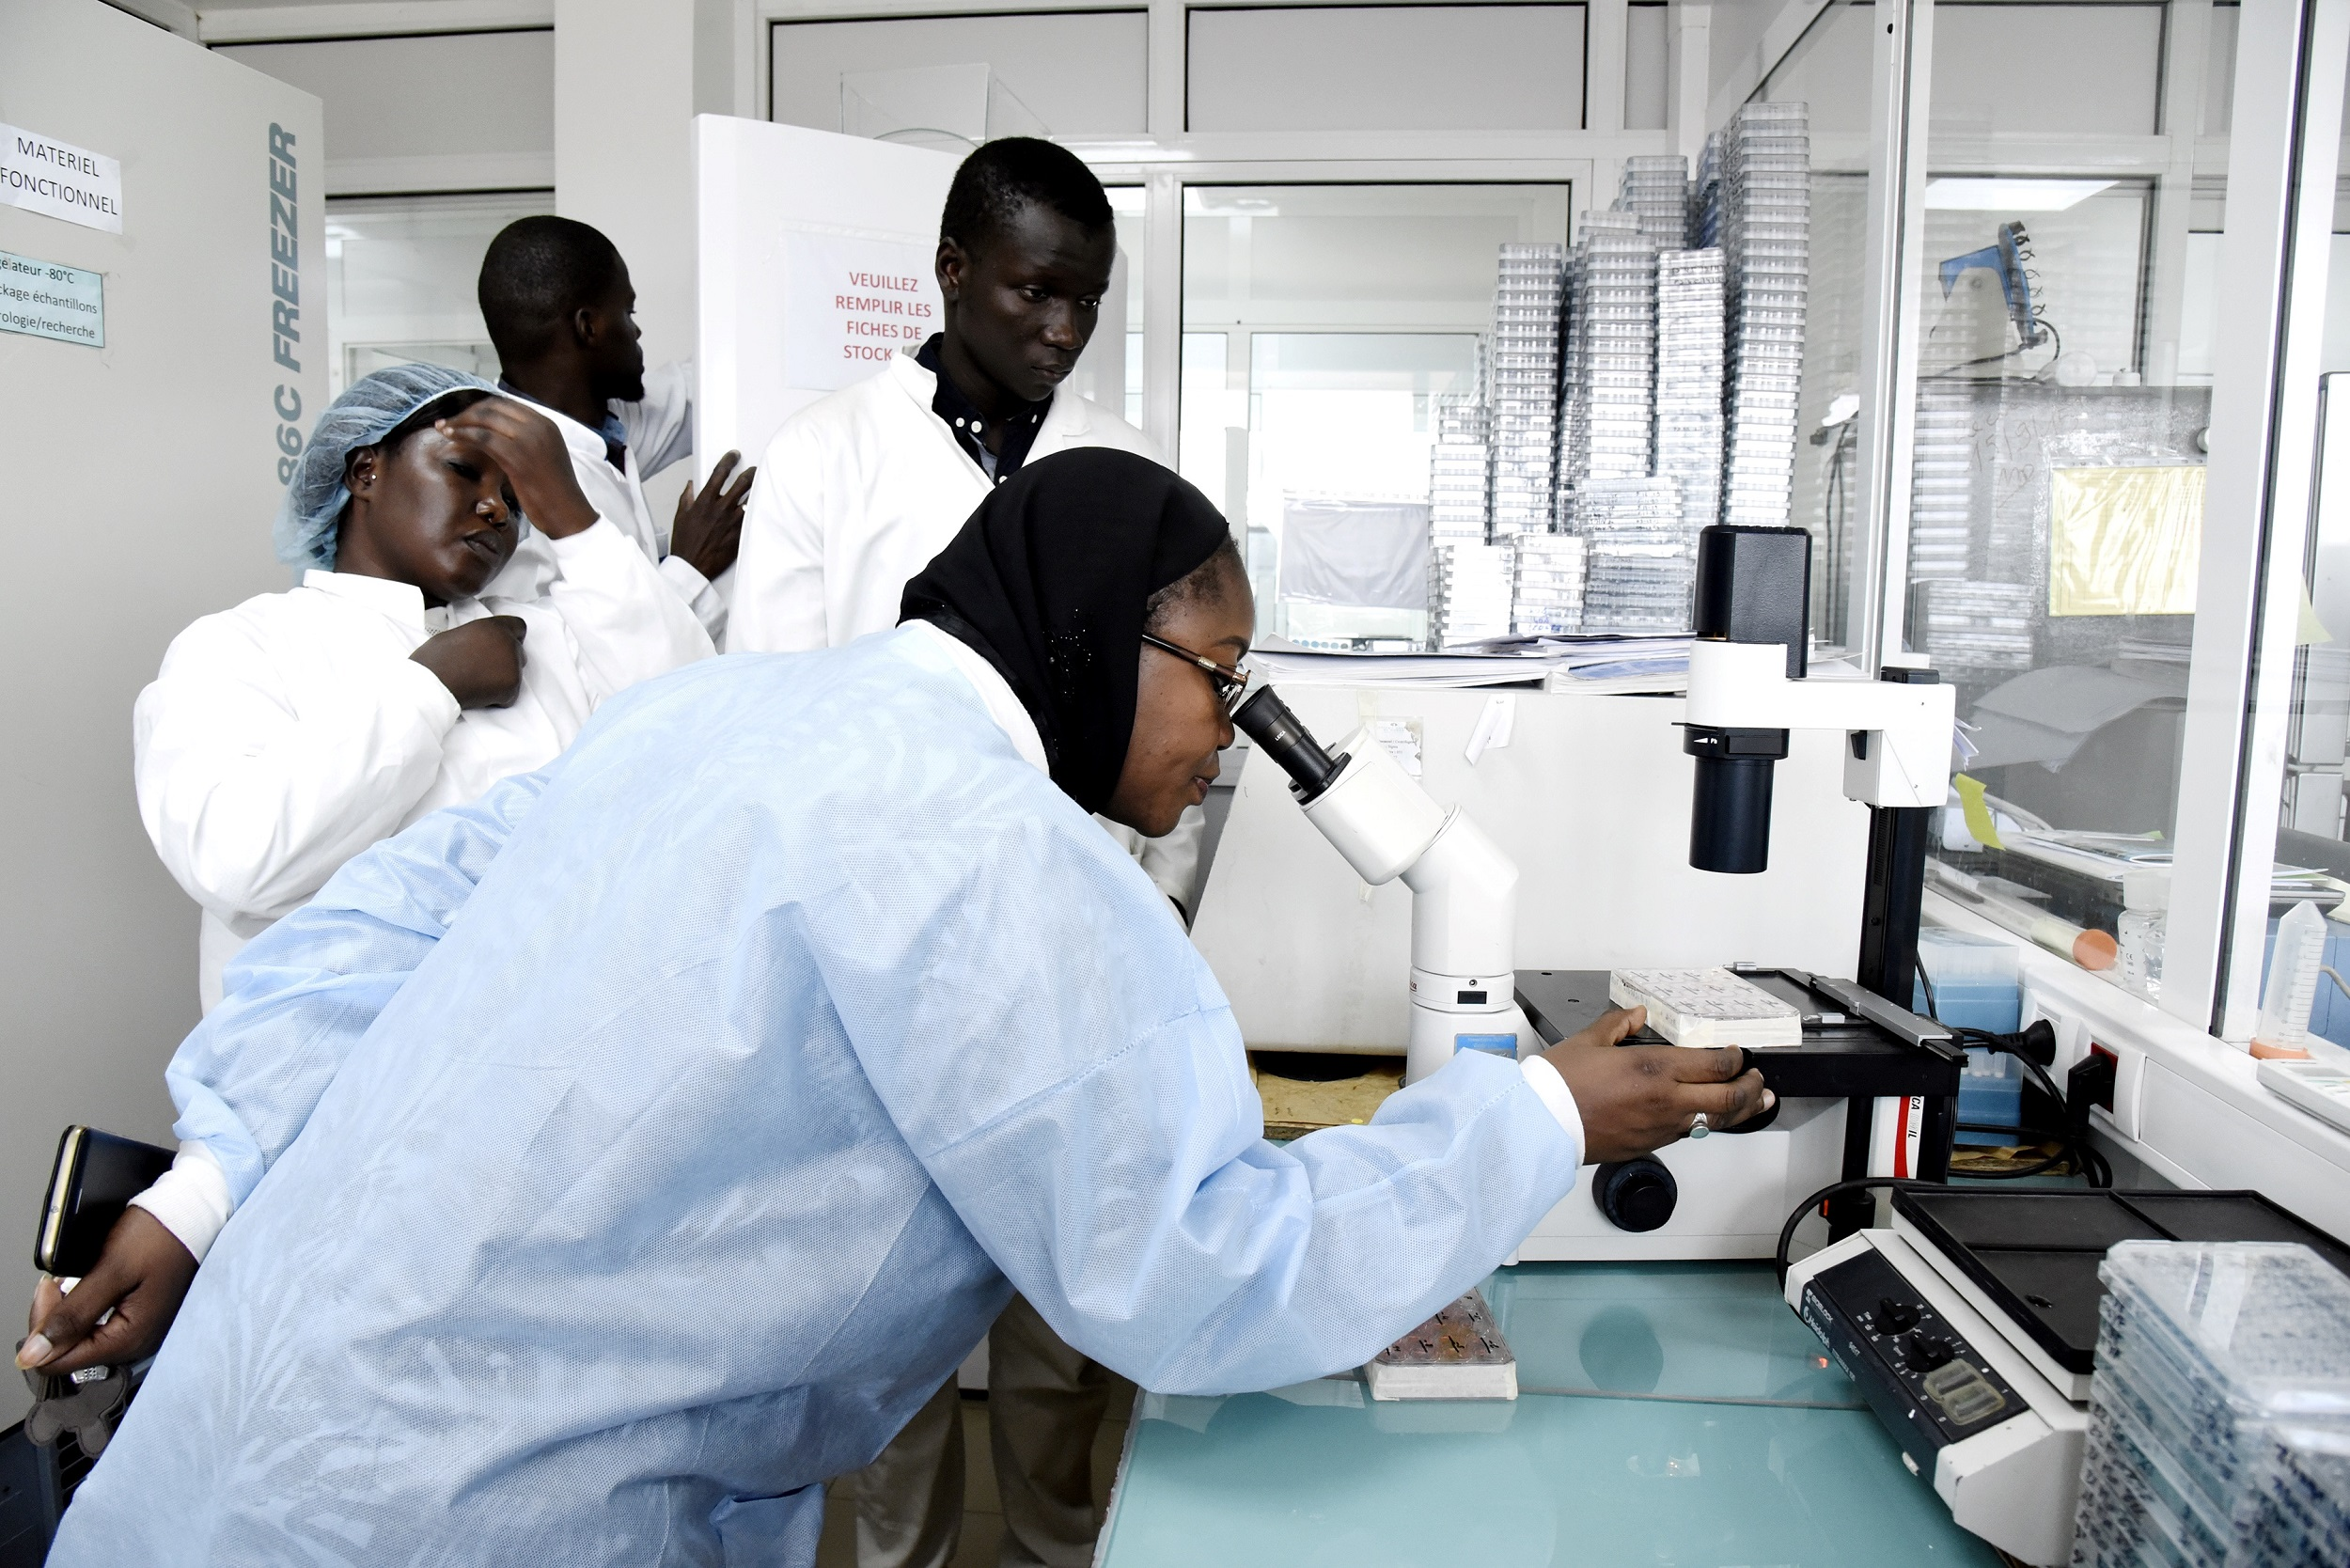 Scientific staff work in a secure laboratory, researching the coronavirus, at the Pasteur Institute in Dakar.